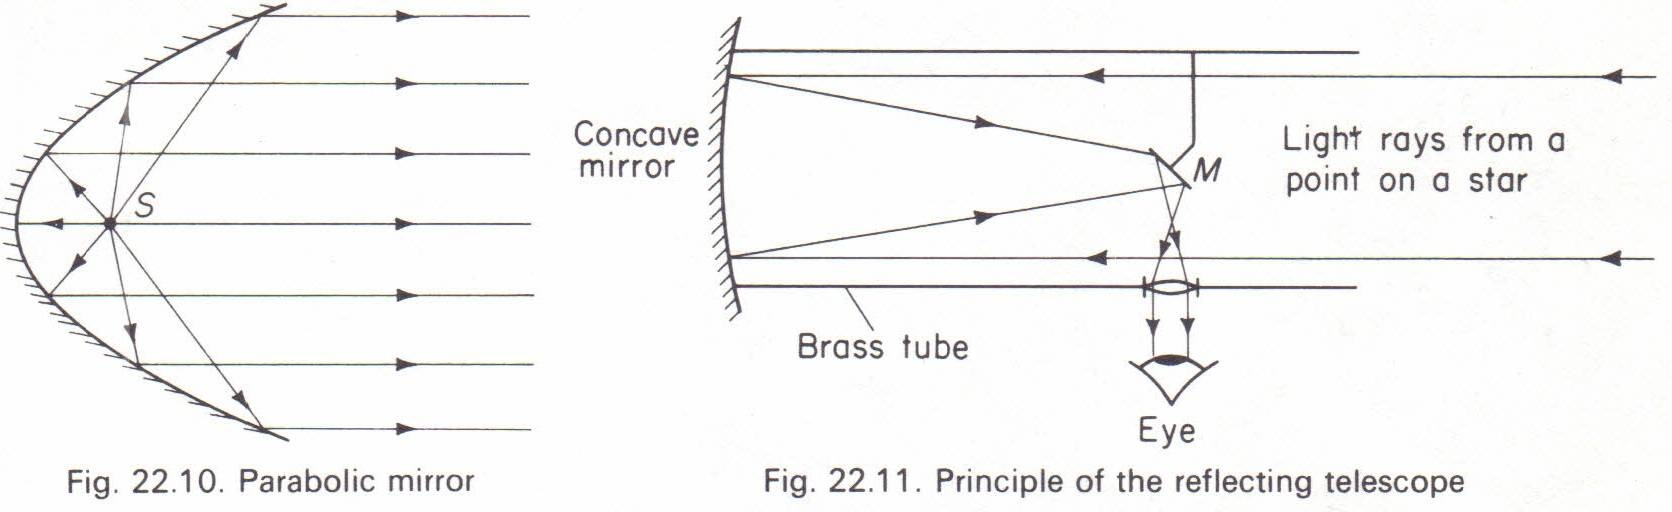 Parallel Beam From Curved Mirrors Physics Homework Help, Physics intended for Curved Mirrors (Image 11 of 15)